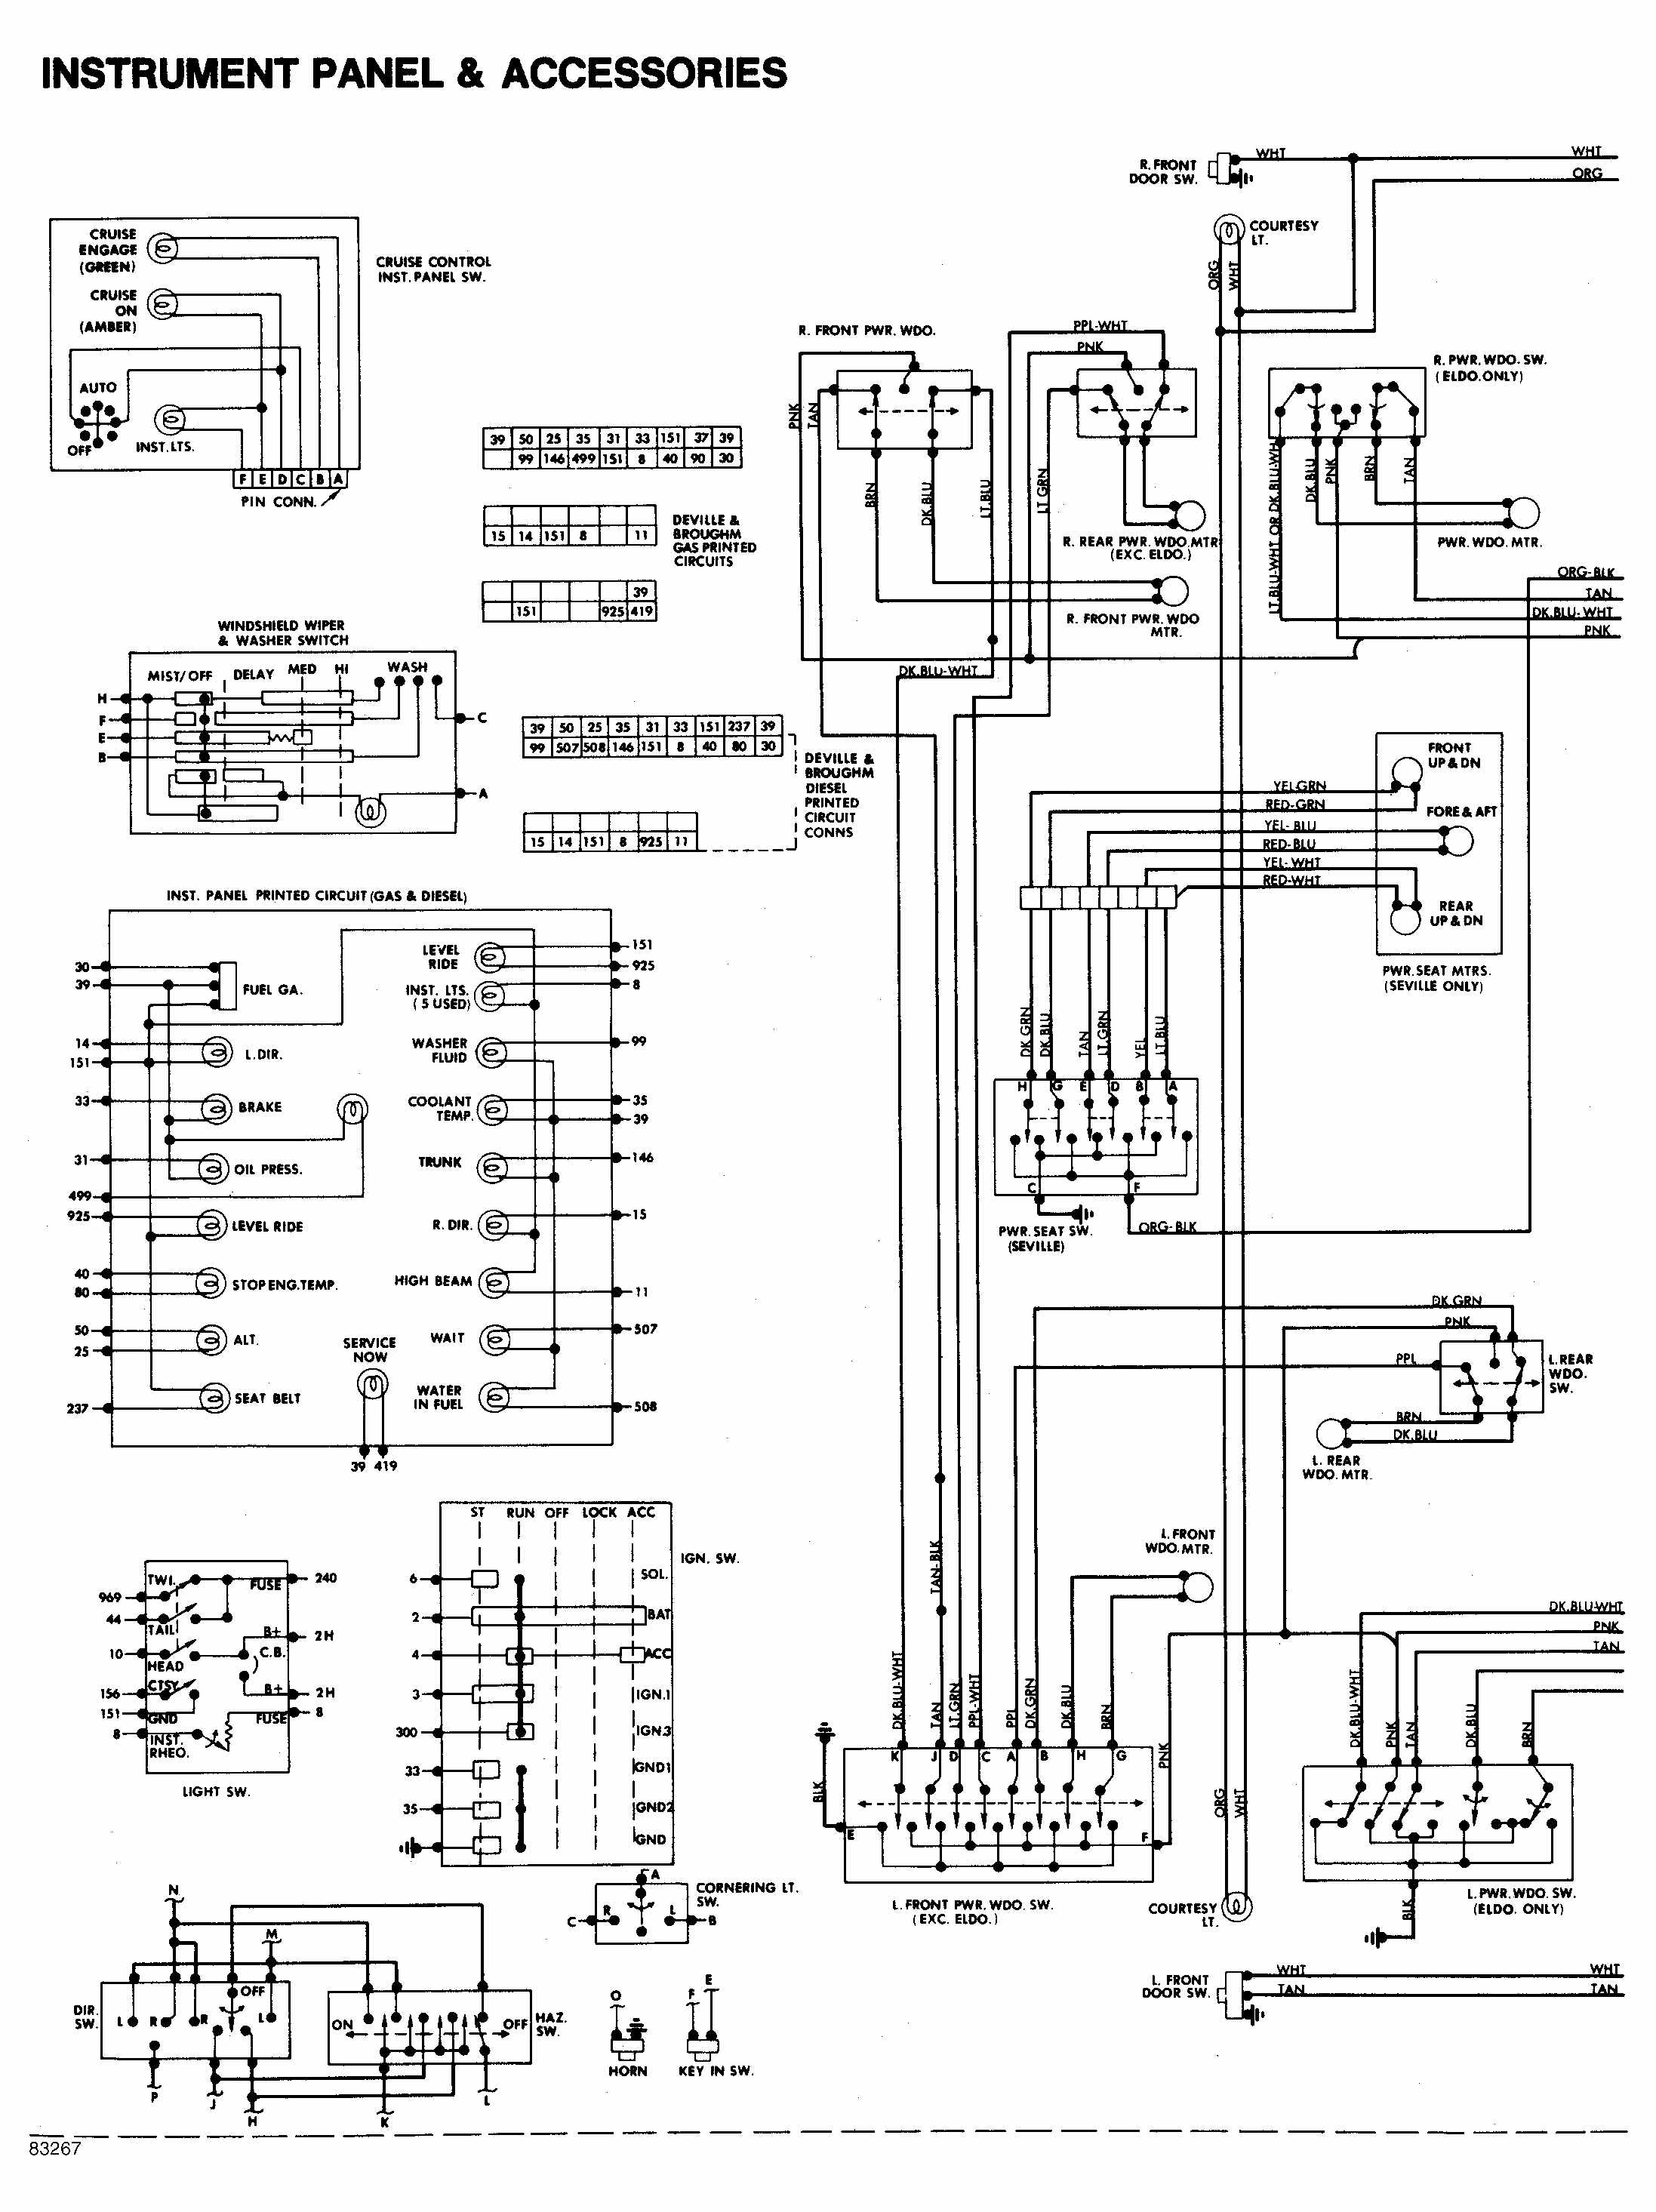 1963 cadillac deville wire diagram